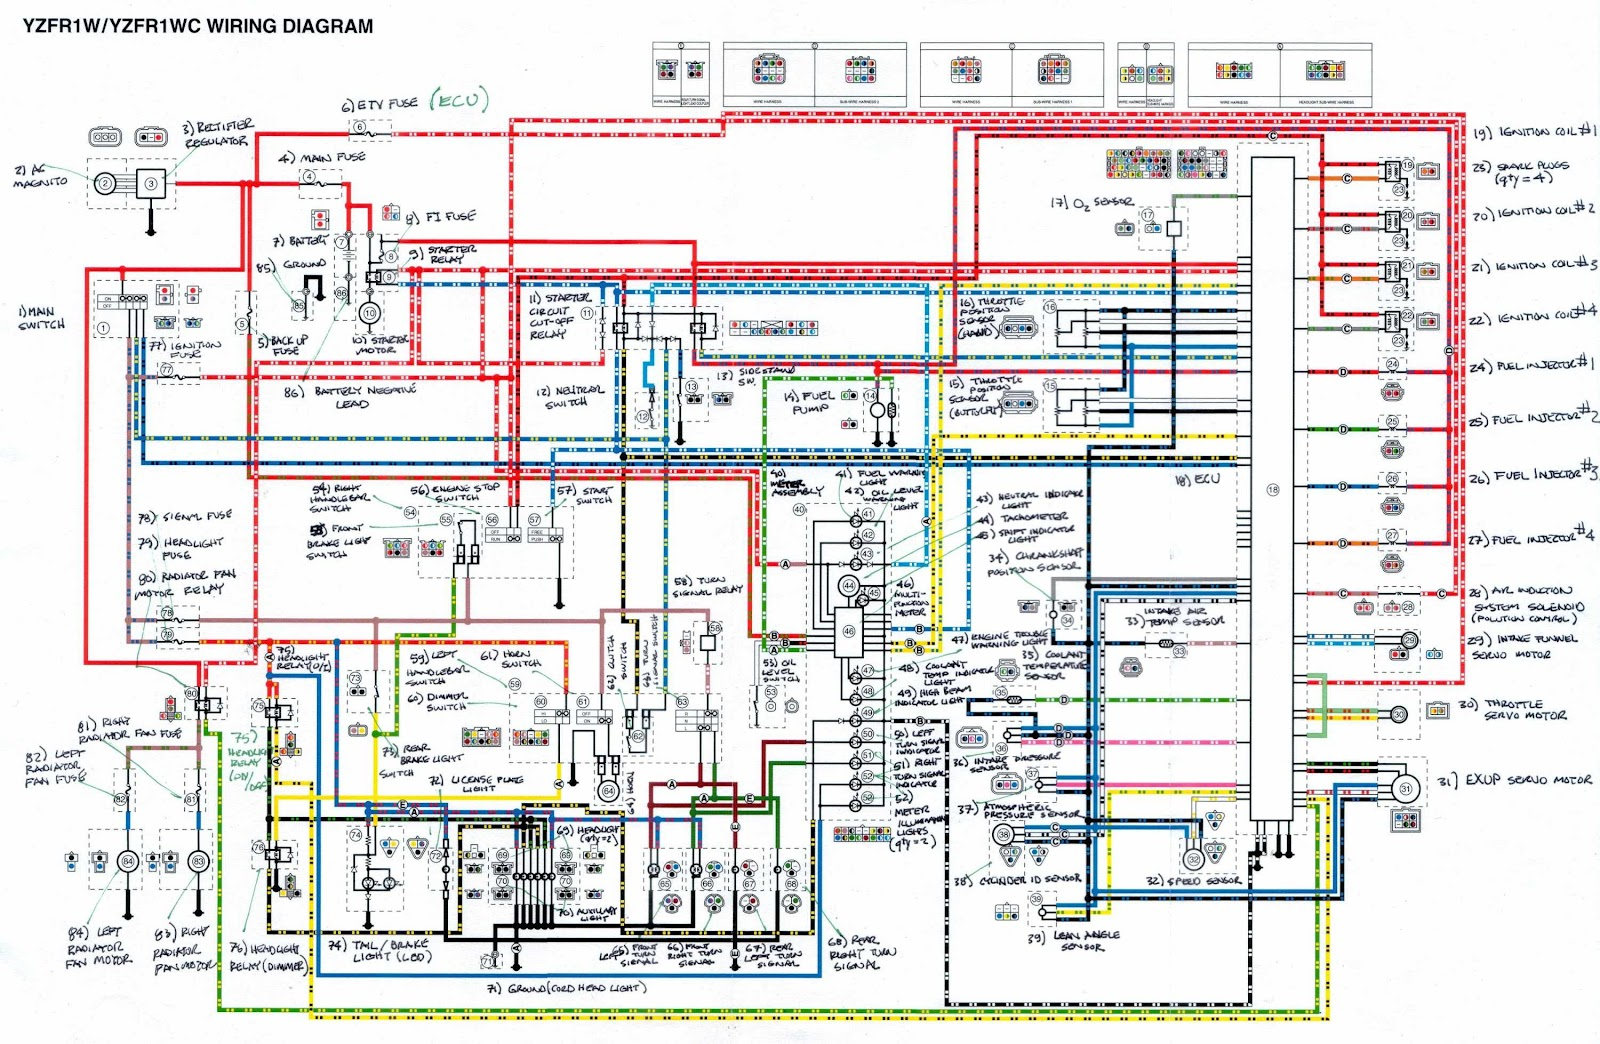 2008 R1 Wiring Diagram. r1 wiring help. wiring diagrams. 2001 yzf r6 wiring  diagram wiring diagram. diagram yamaha r6 wiring diagram full version hd  quality. 2006 r6 wiring diagram wiring diagram virtualA.2002-acura-tl-radio.info. All Rights Reserved.